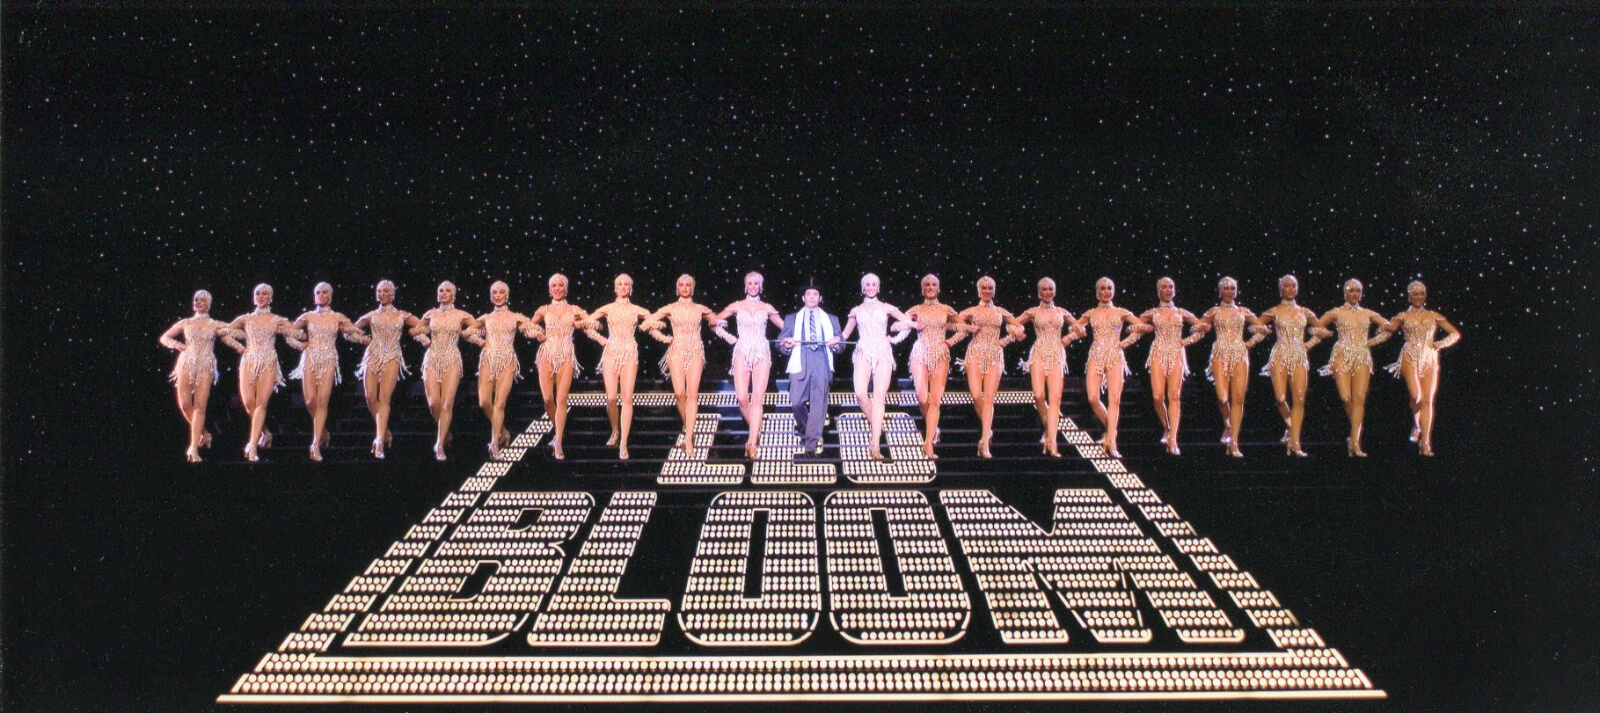 Leo Bloom (Matthew Broderick) and The Pearl Girls. They are walking down a large stair case with the word Leo Bloom painted in the center. There are 10 girls on each side of him. There is a star drop behind them.